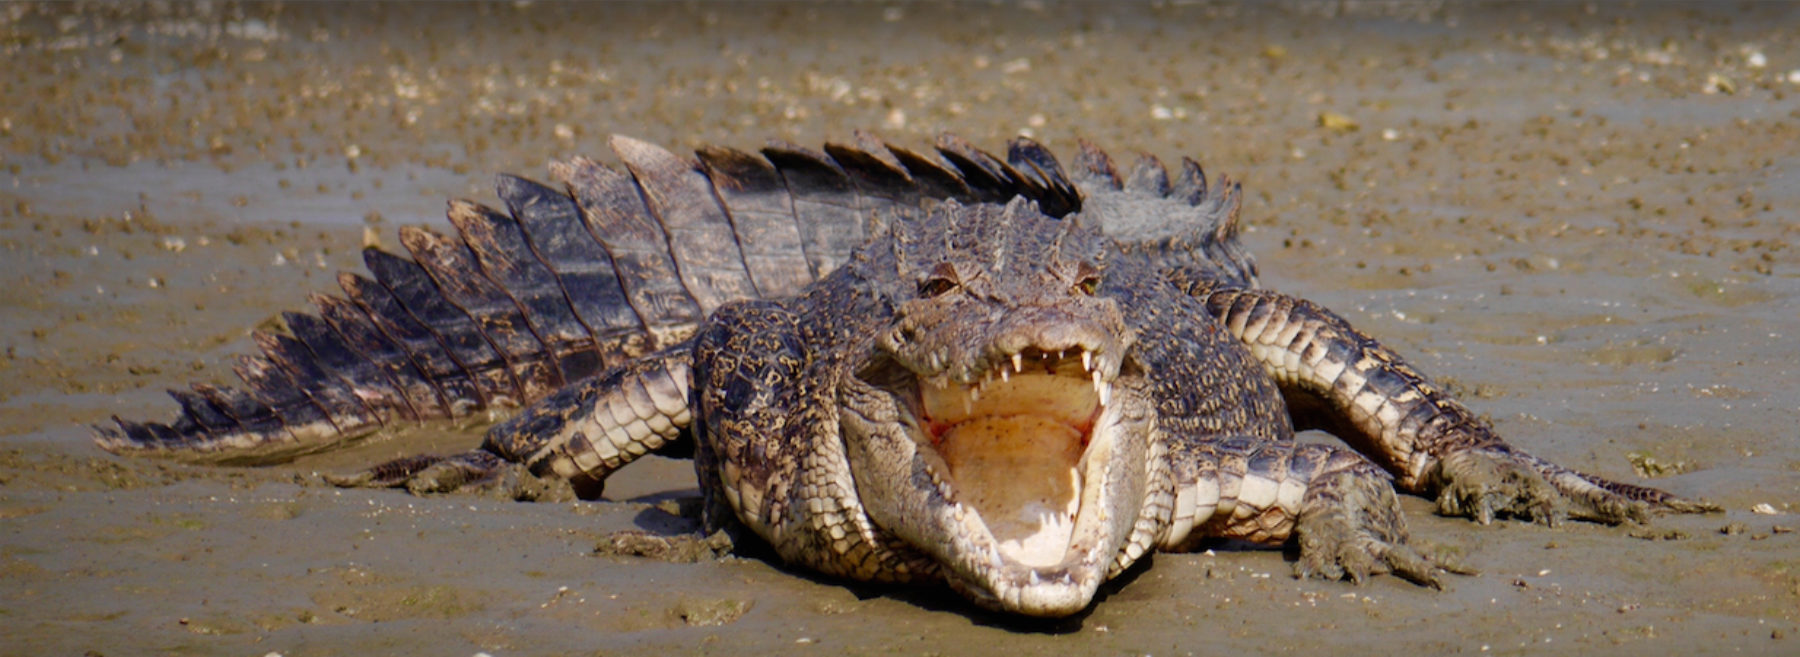 Saltwater crocodile on mudflat with mouth open.